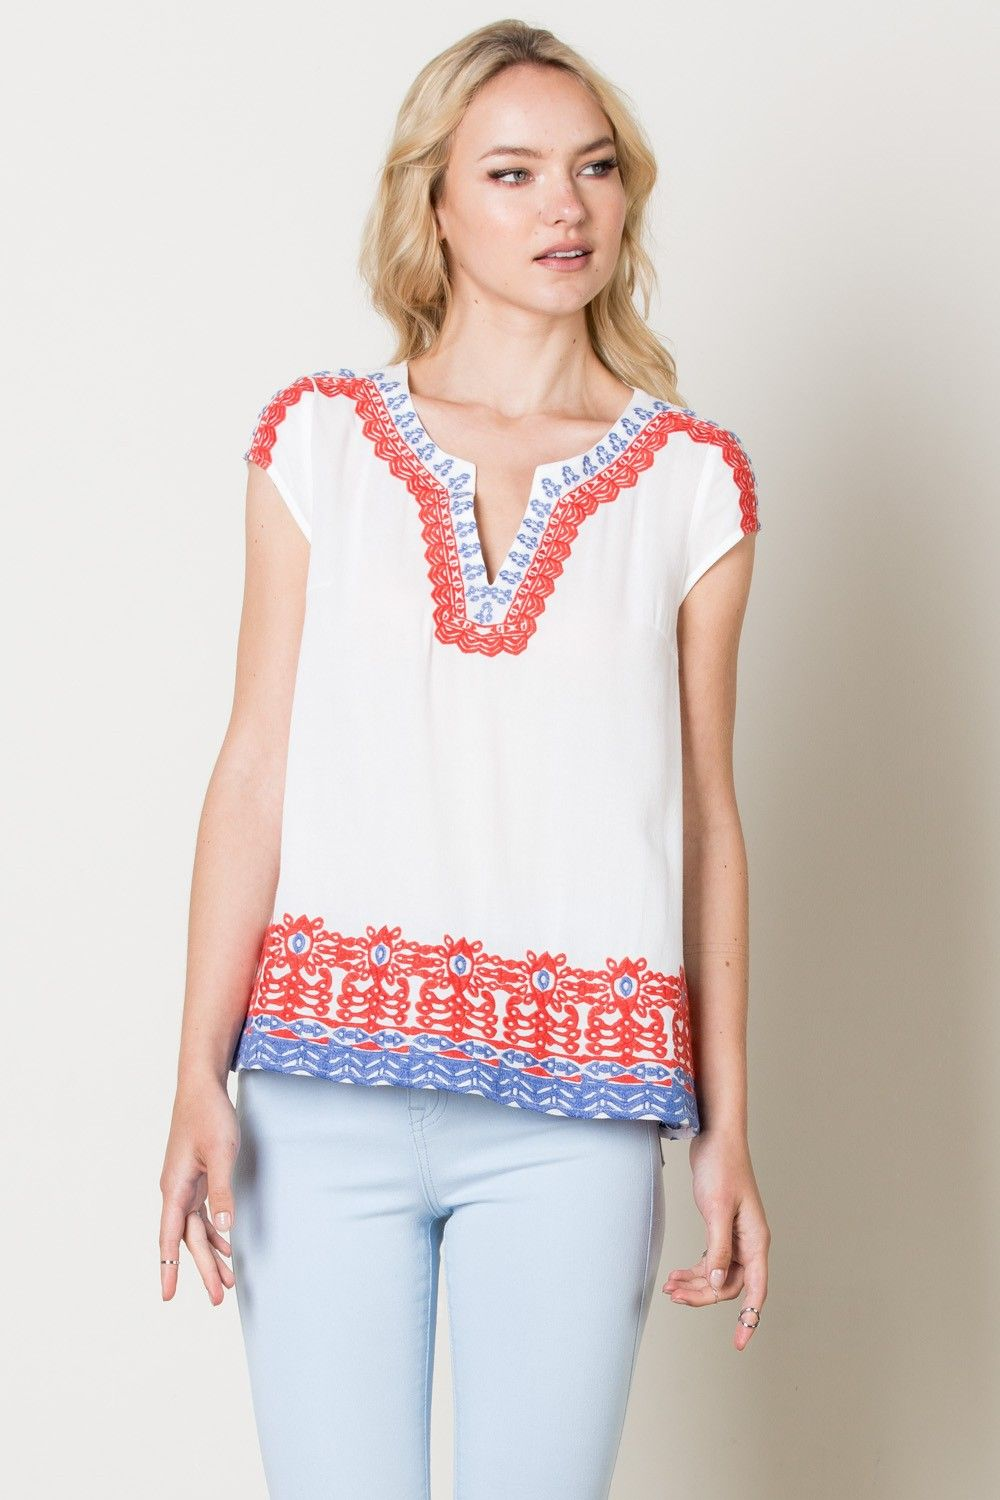 dab268d7ad2 TM 3728 Embroidered Top in White